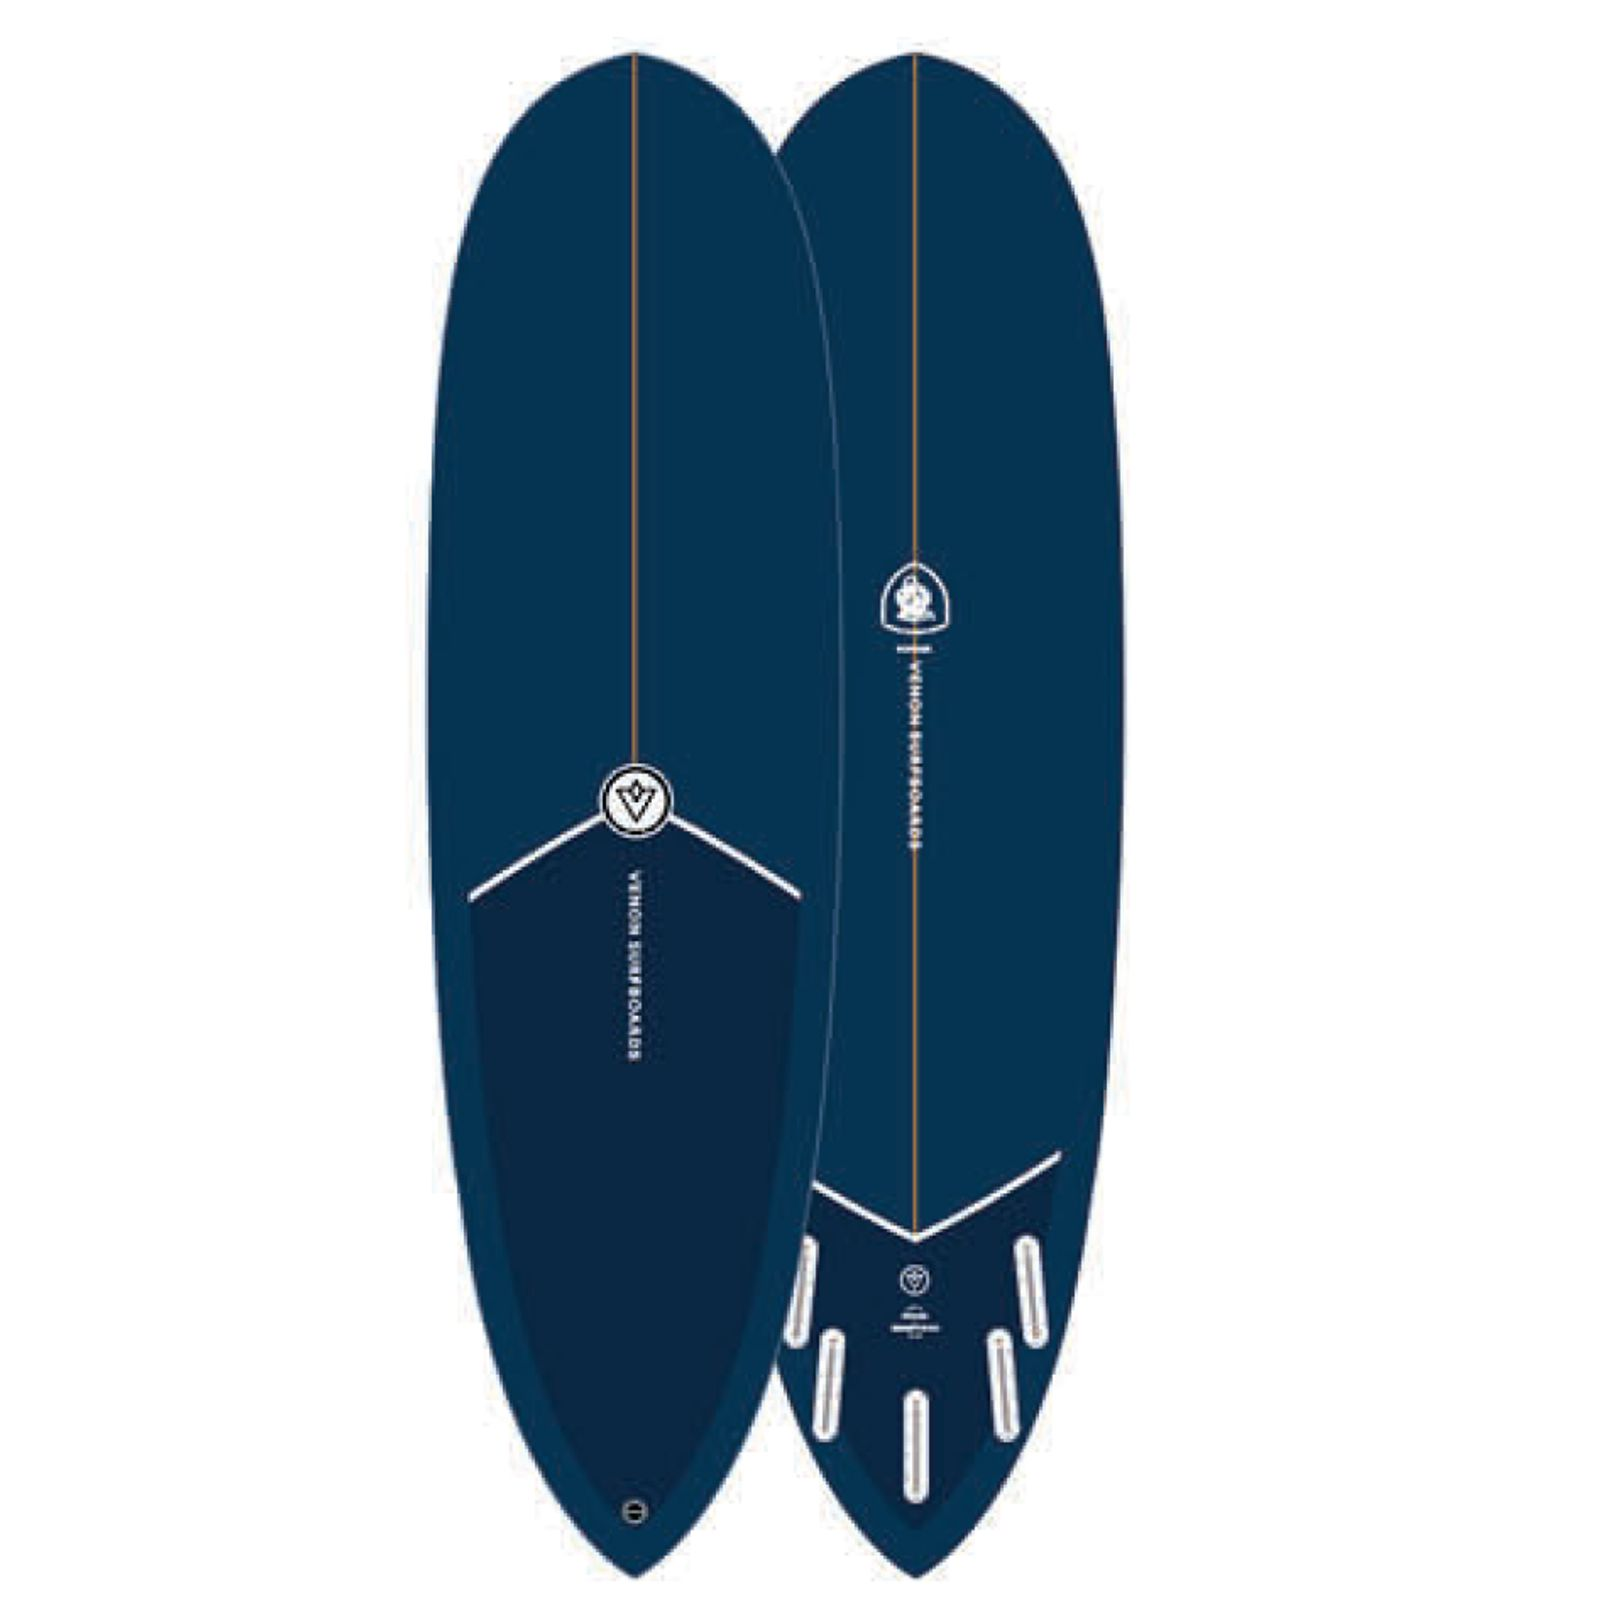 Surfboard VENON Gopher 7.0 Navy